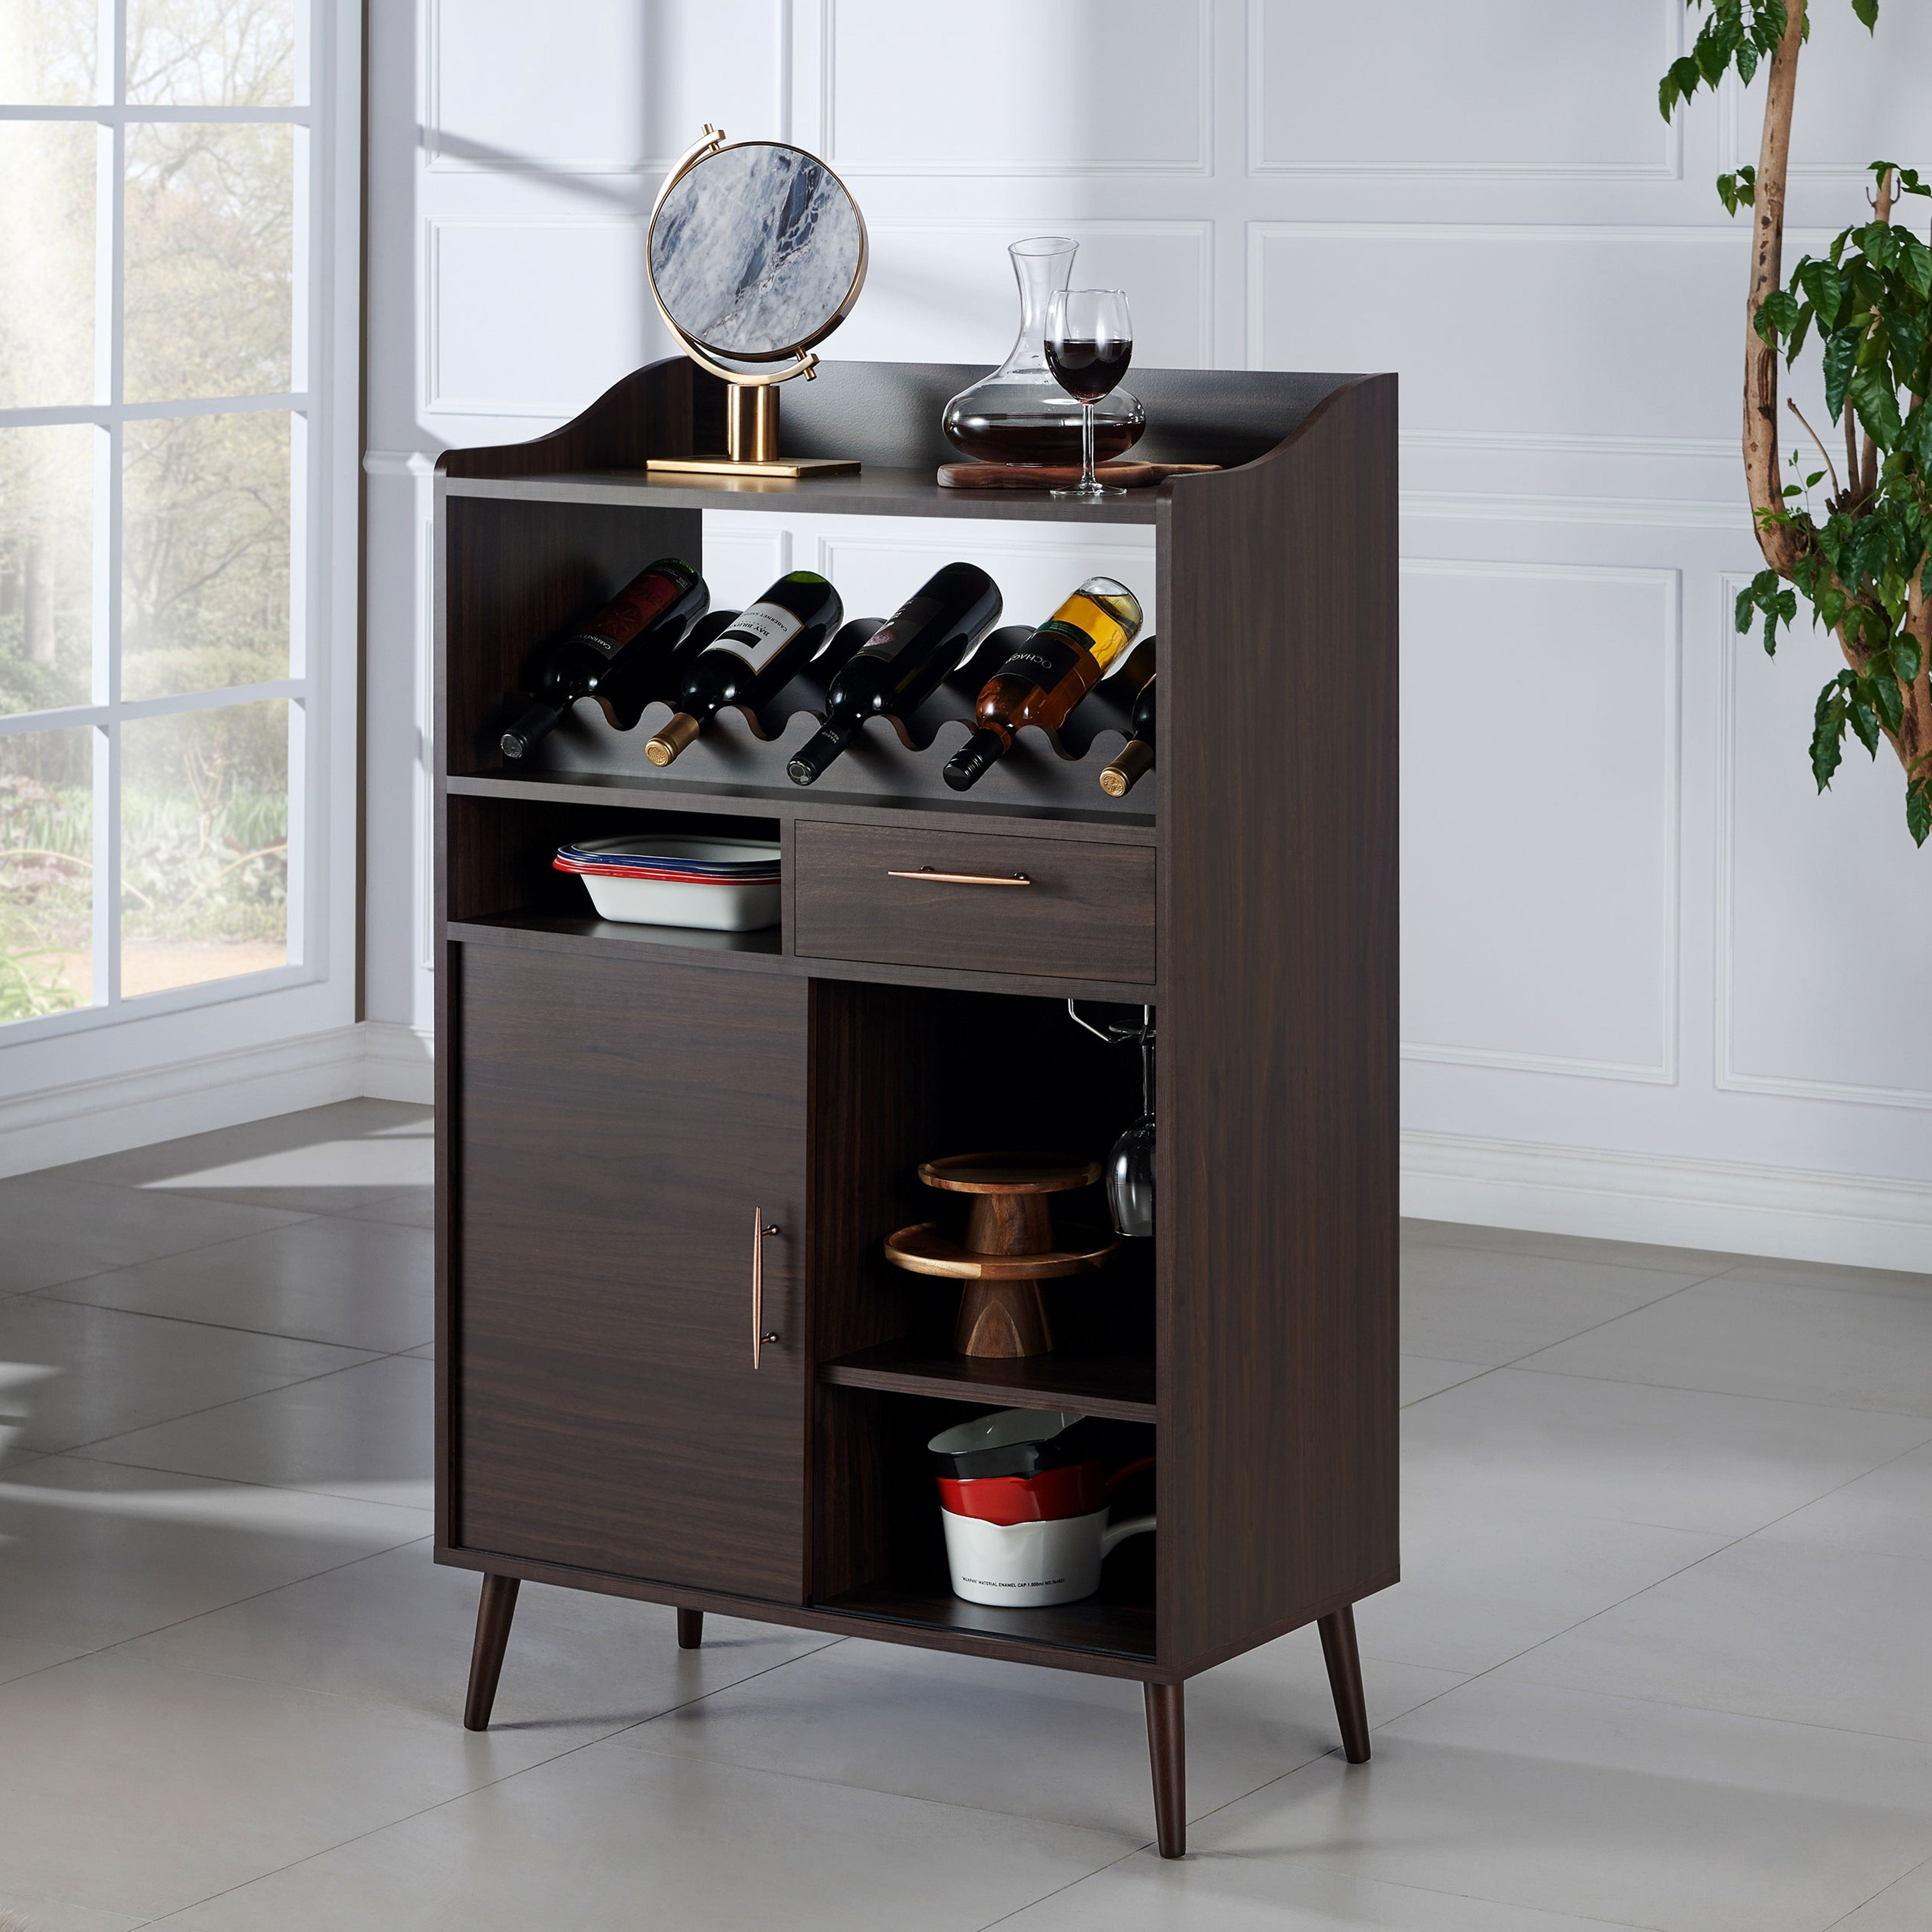 Details About Furniture Of America Taliyah Buffet With Wine Rack